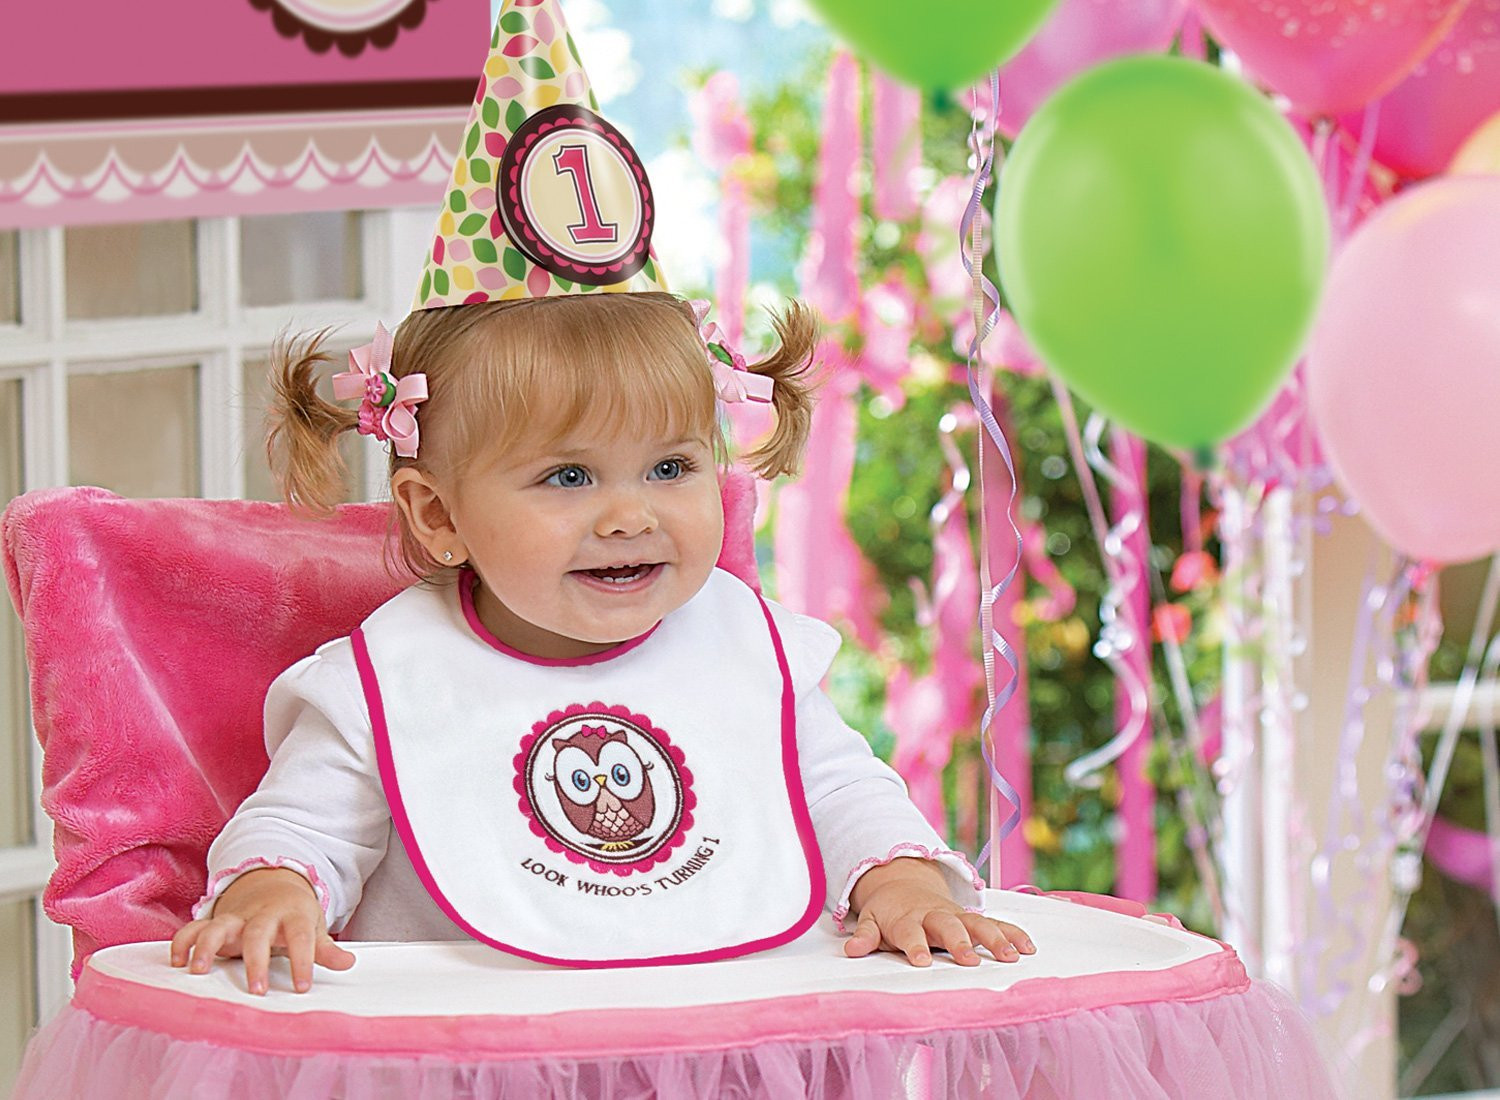 Gifts For Baby Girls First Birthday  22 Fun Ideas For Your Baby Girl s First Birthday Shoot